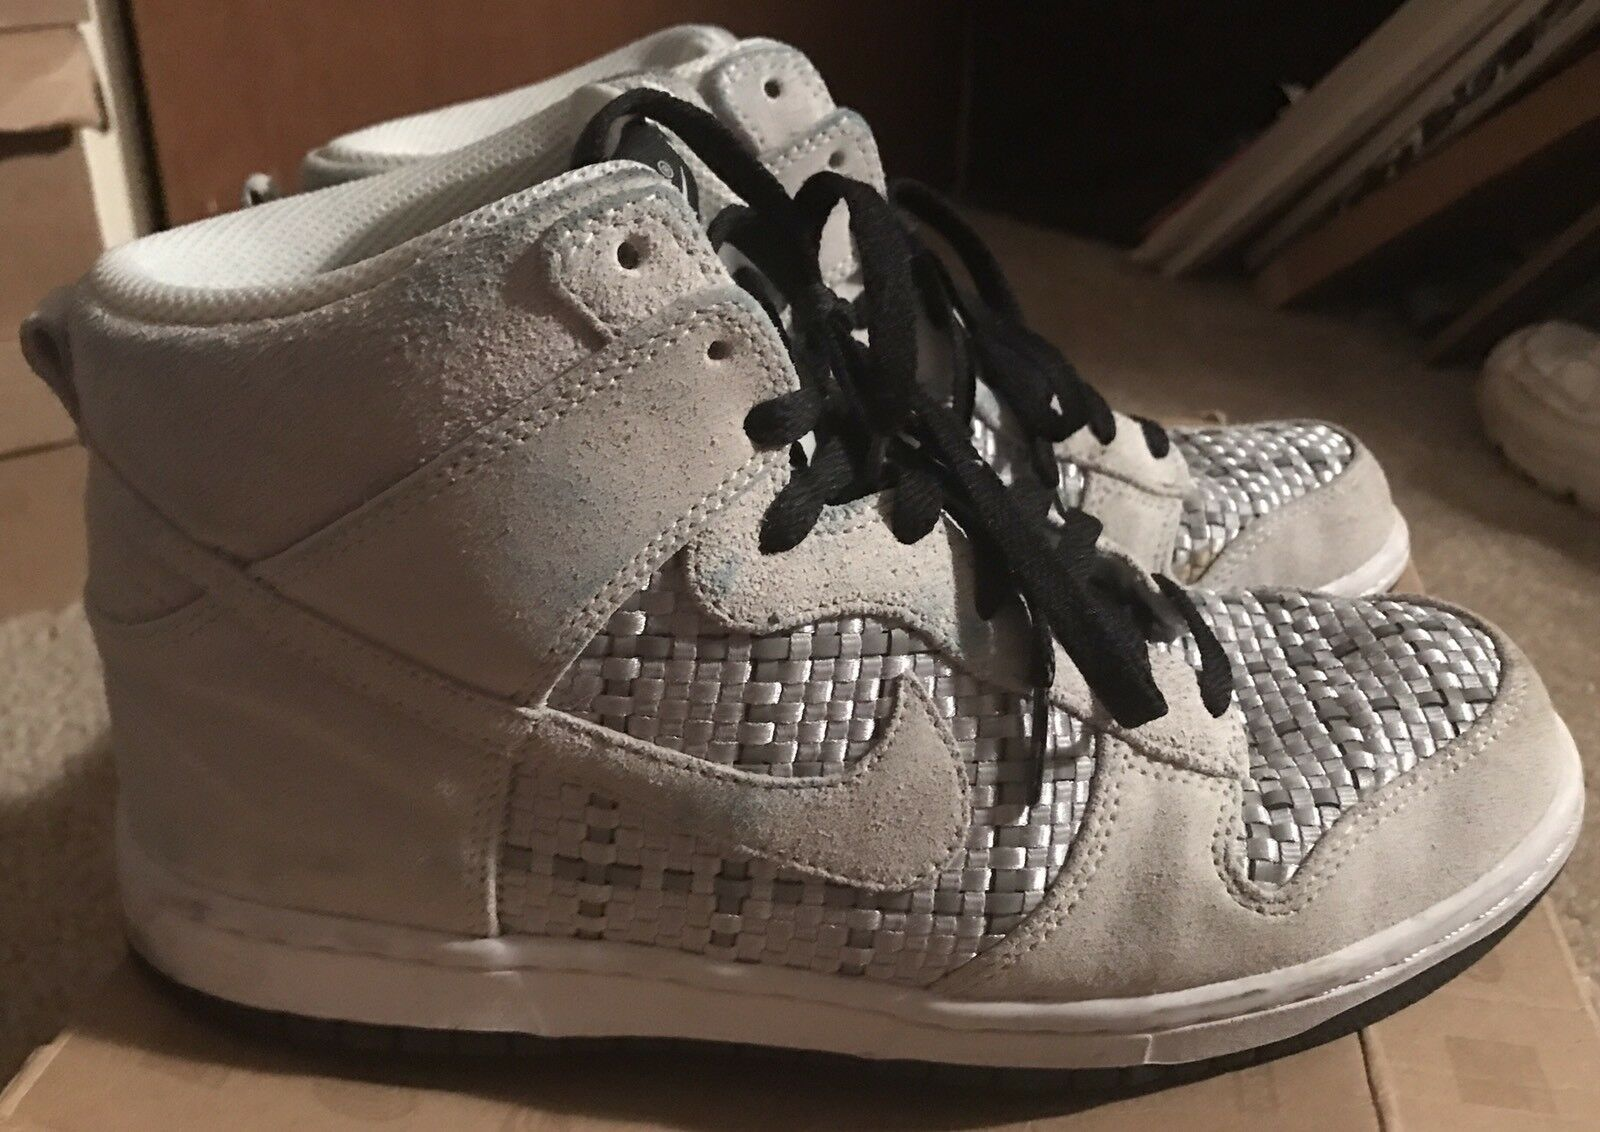 New shoes for men and women, limited time discount Nike Dunk High Premium Men's 9.5 Price reduction